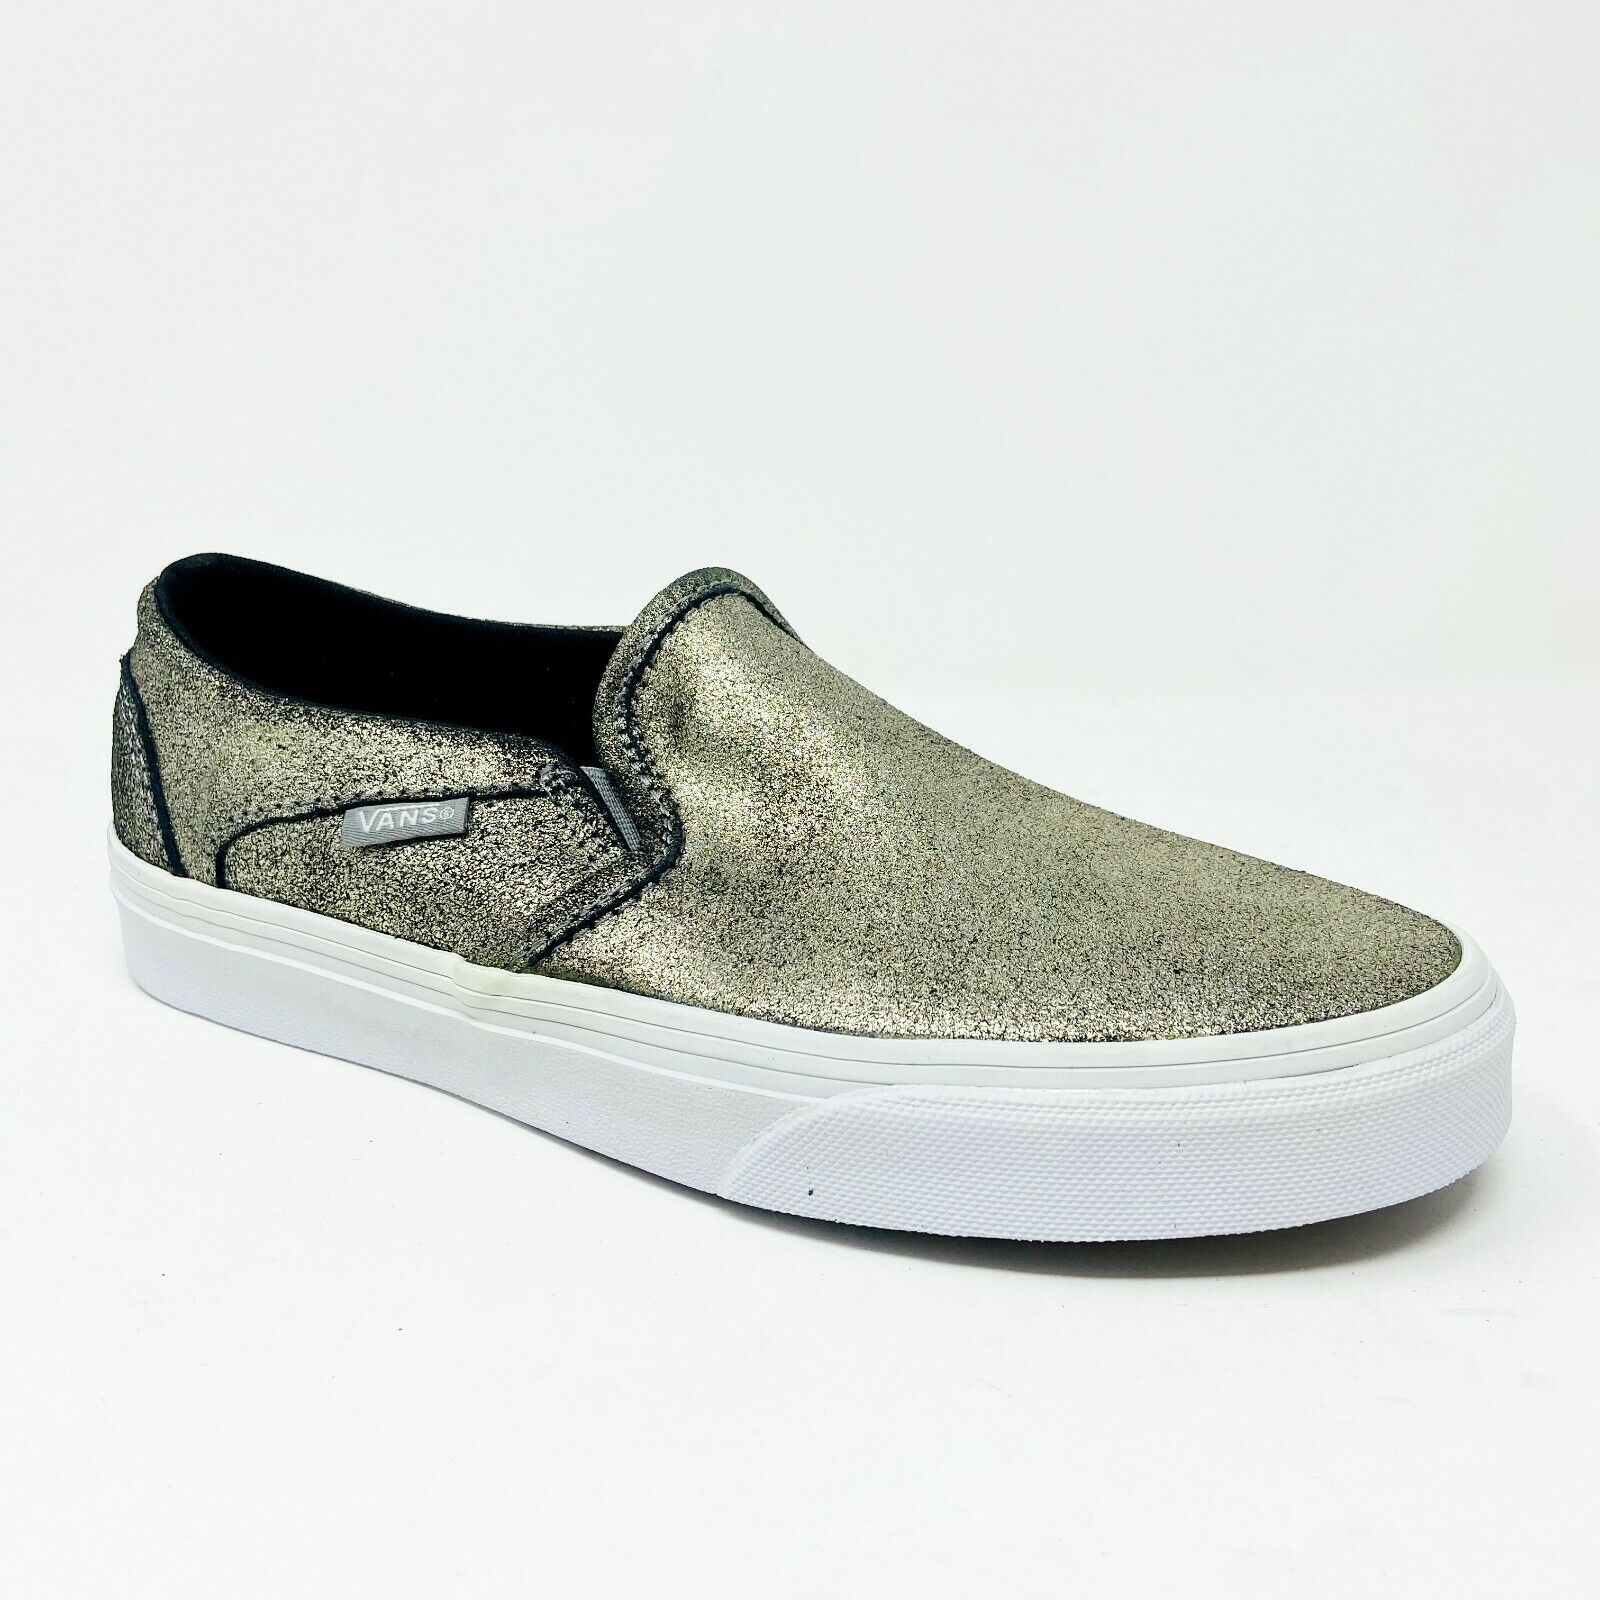 Vans Asher (Metallic) Gold White Womens Classic Slip On Laceless Sneakers - $49.95